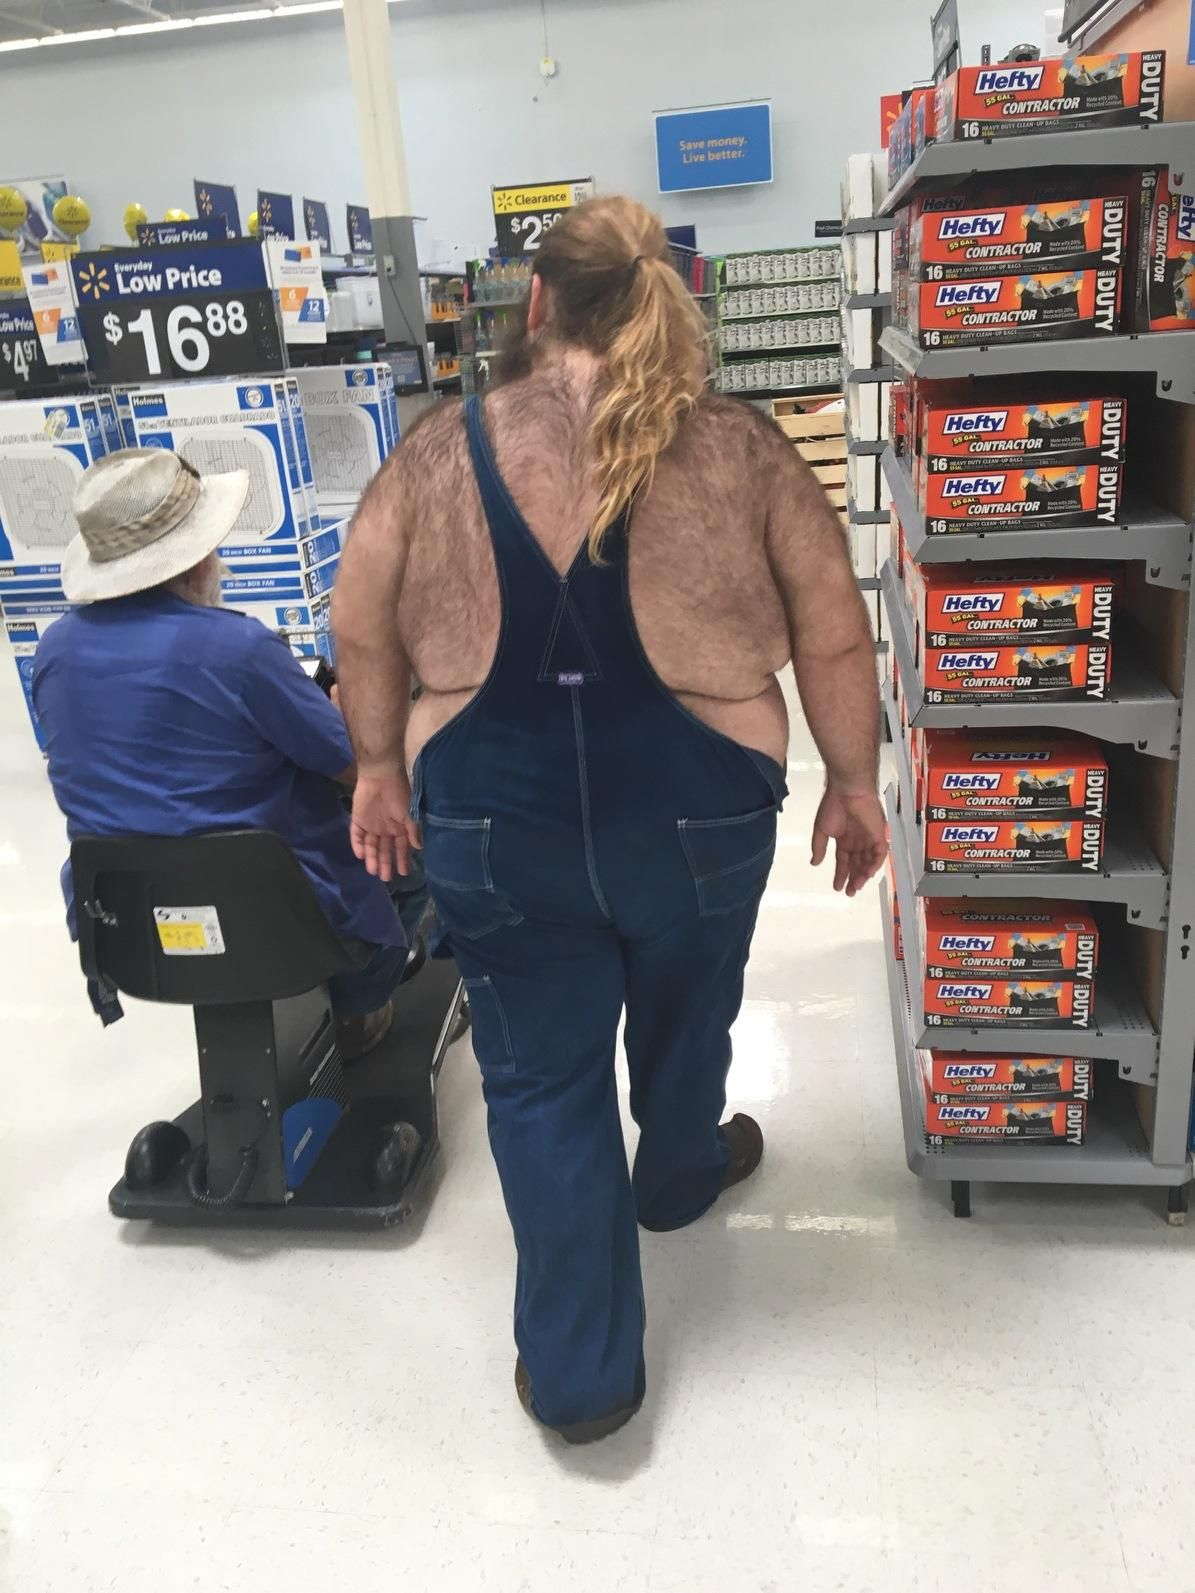 People of Walmart - Wikipedia